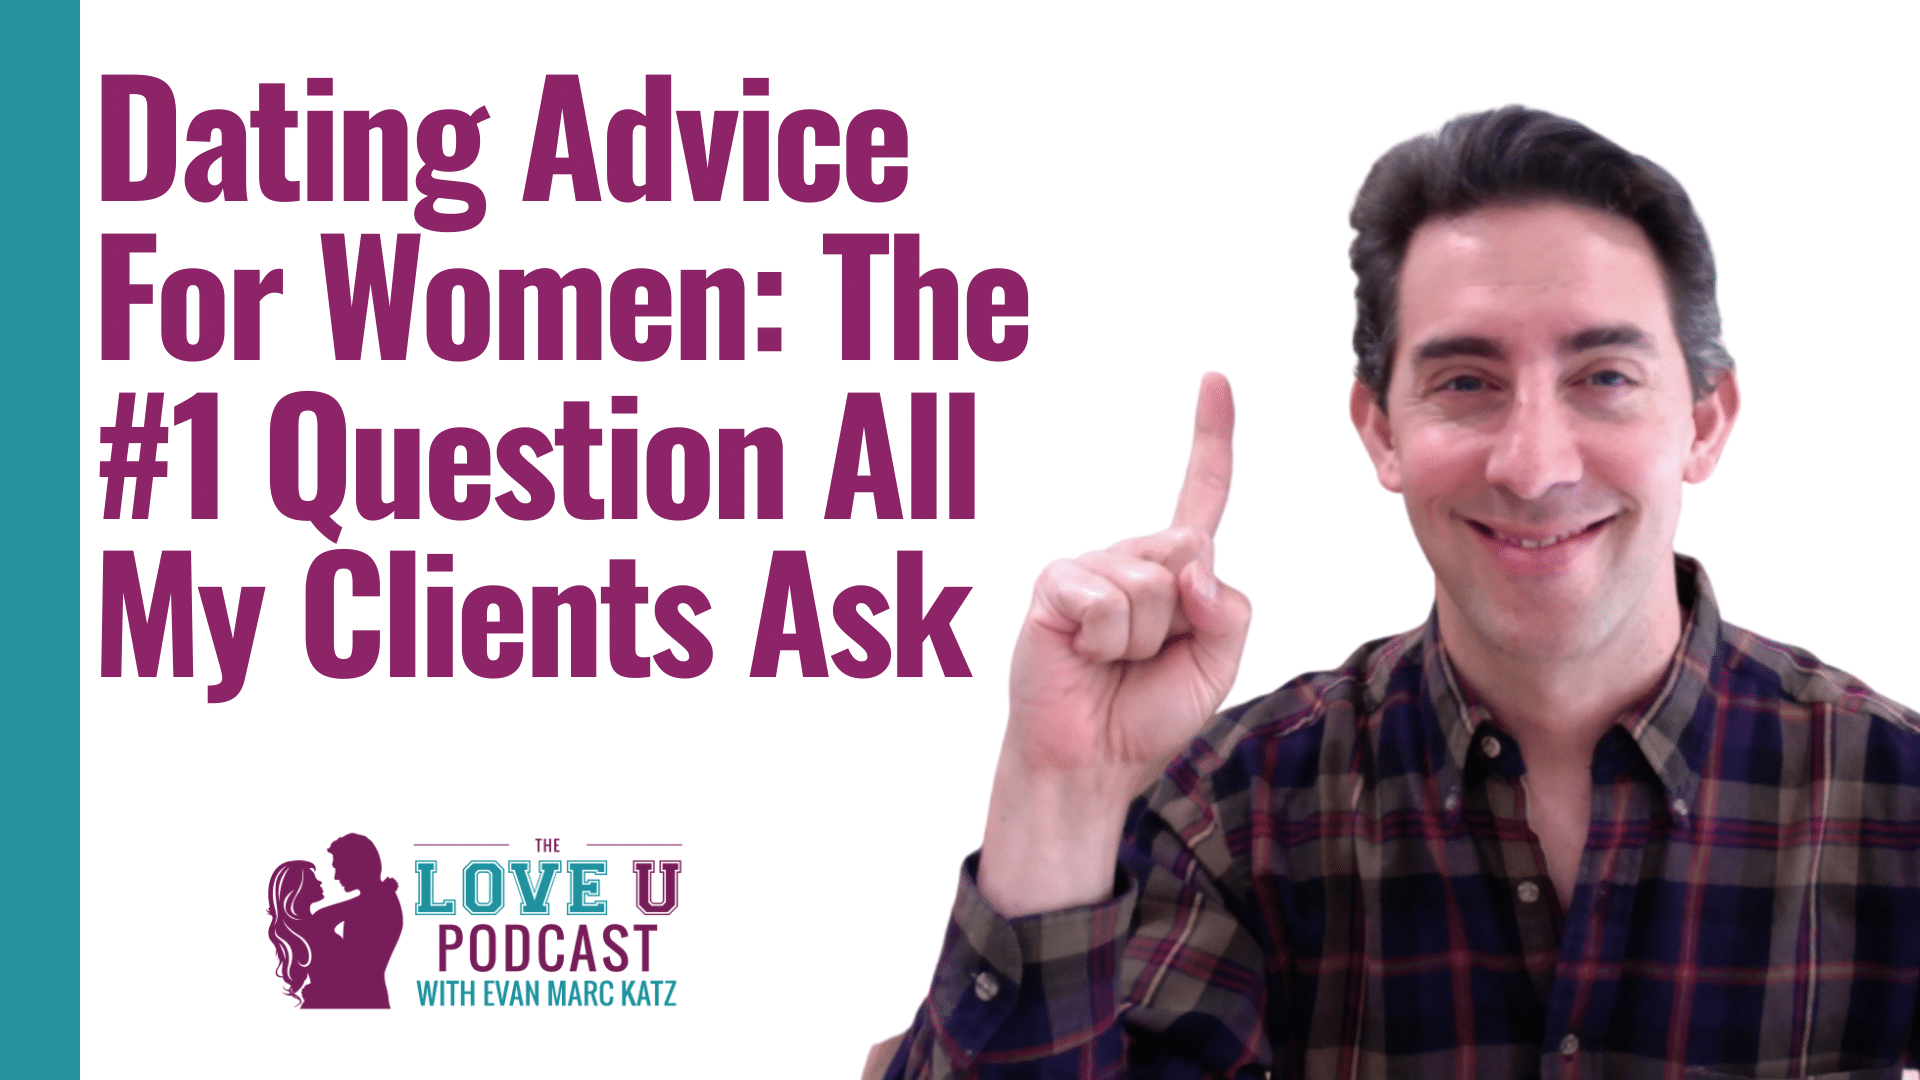 The #1 Question All My Clients Ask